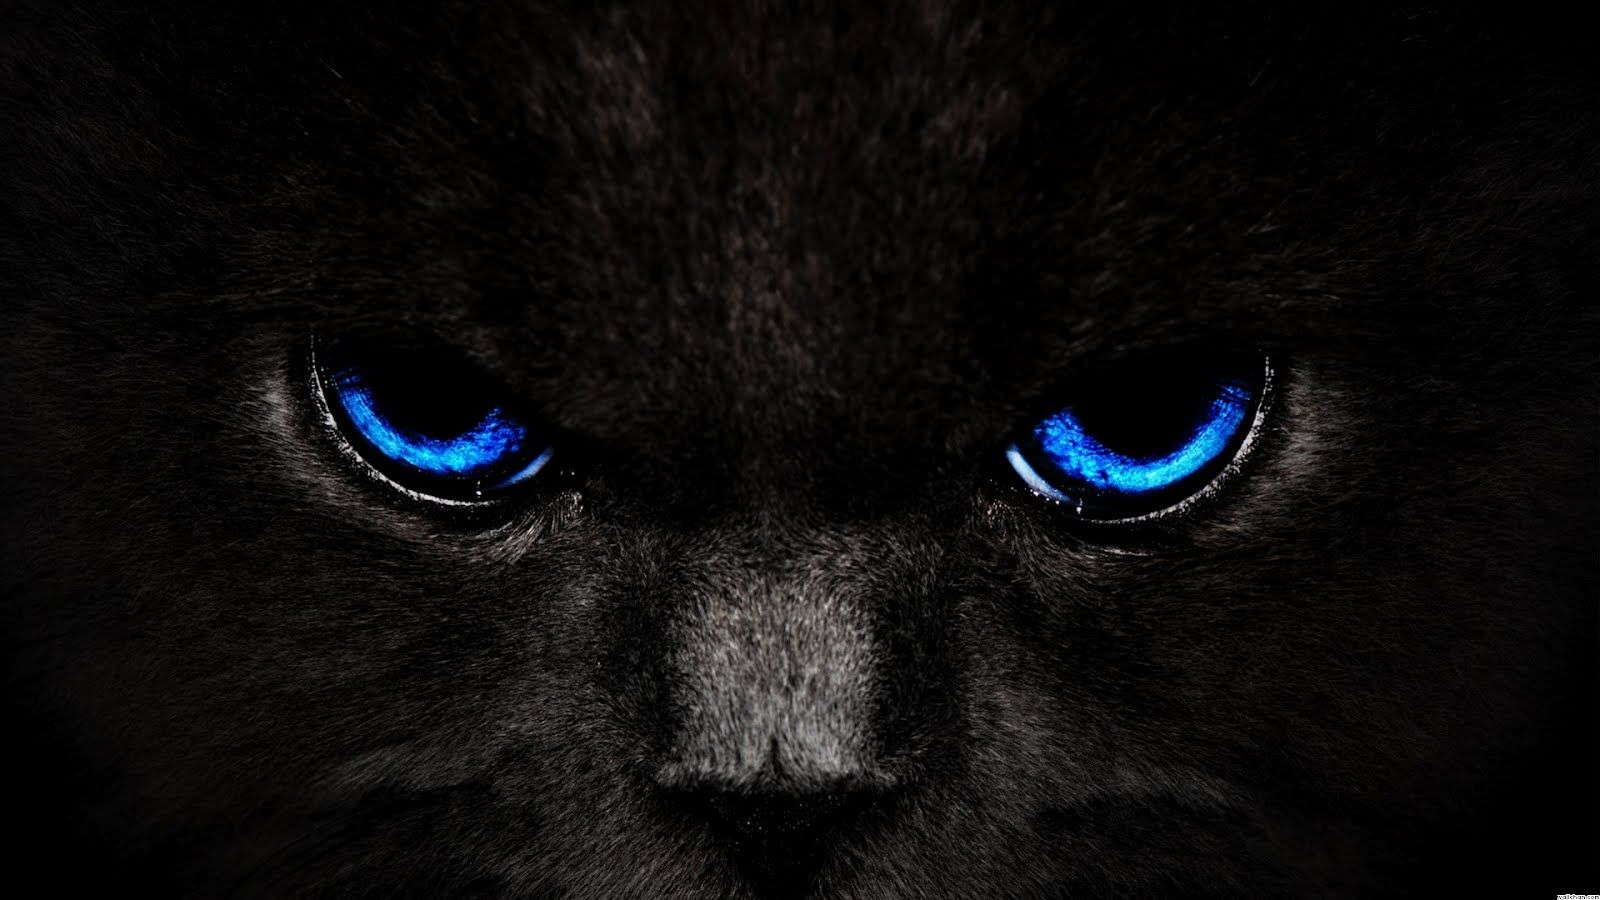 Black And Blue Background Wallpaper Black Cat Blue Eyes